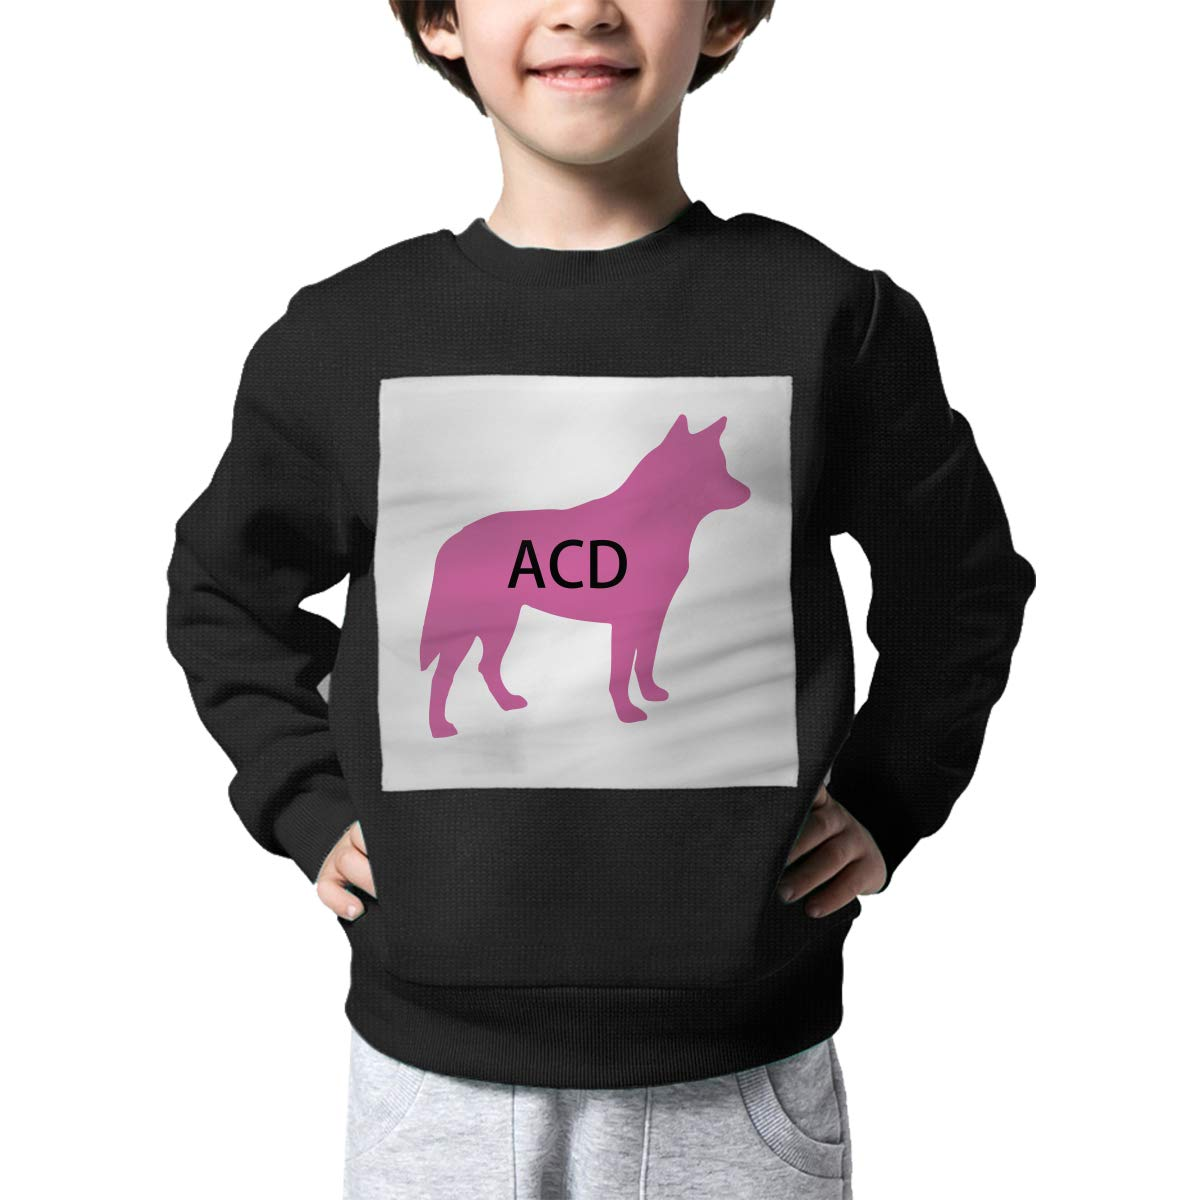 AW-KOCP Childrens Australian Cattle Dog ACD Sweater Boys Girls Sweatshirt